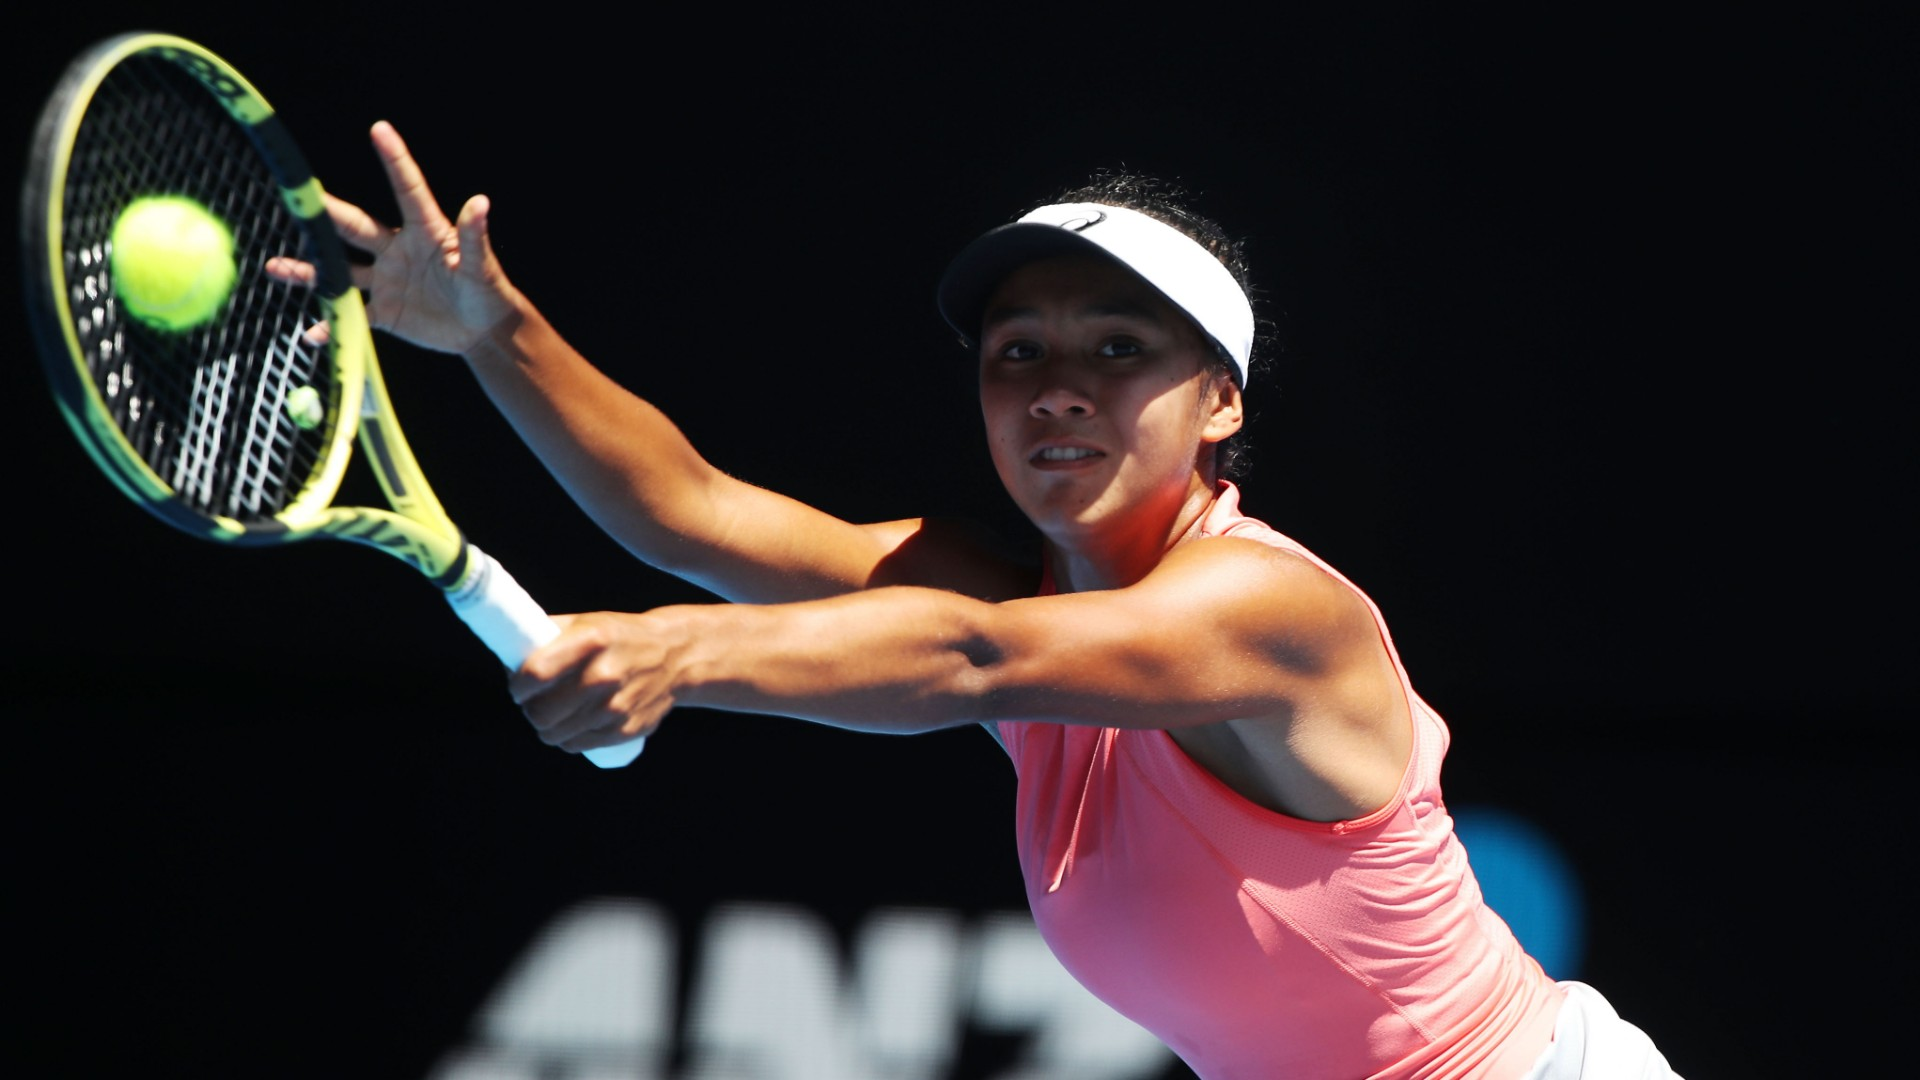 Australian Open 2020: Canada's Leylah Annie Fernandez advances out of qualifiers, country's only woman in main draw